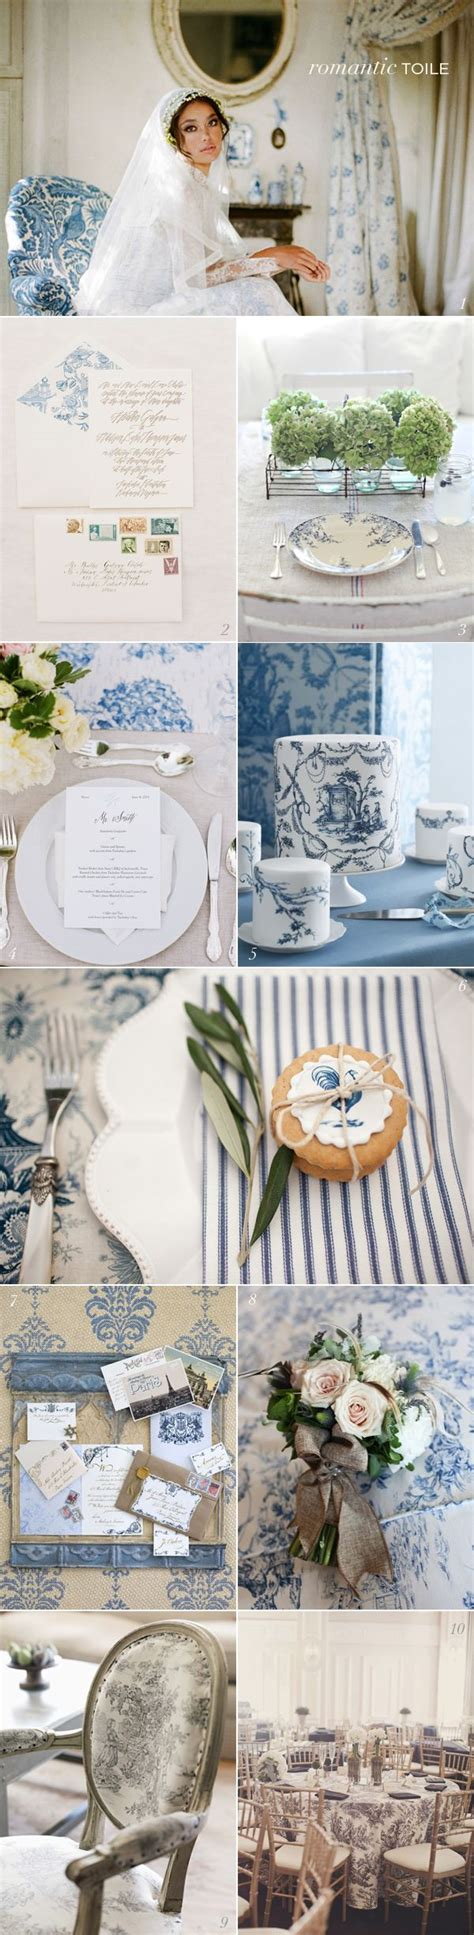 17 Best Ideas About French Country Weddings On Pinterest